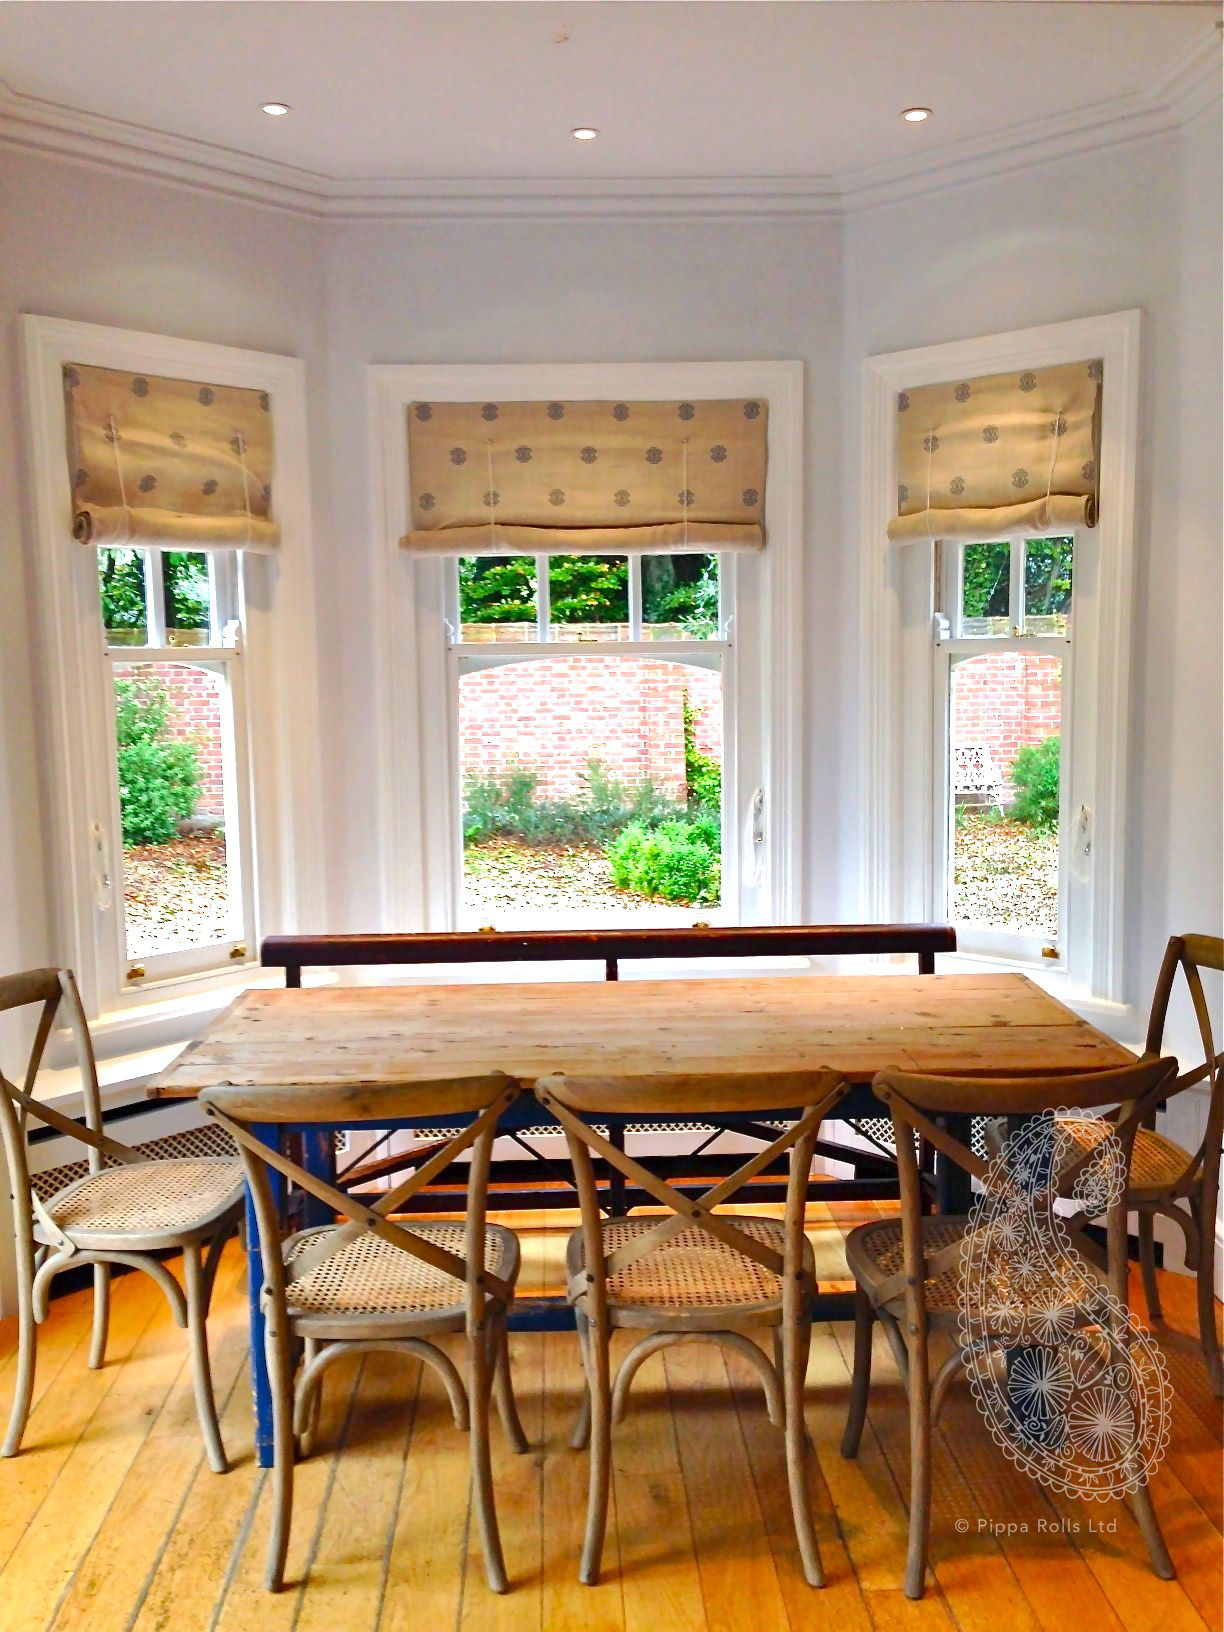 Rustic Swedish roll-up blinds copy jpeg.jpg